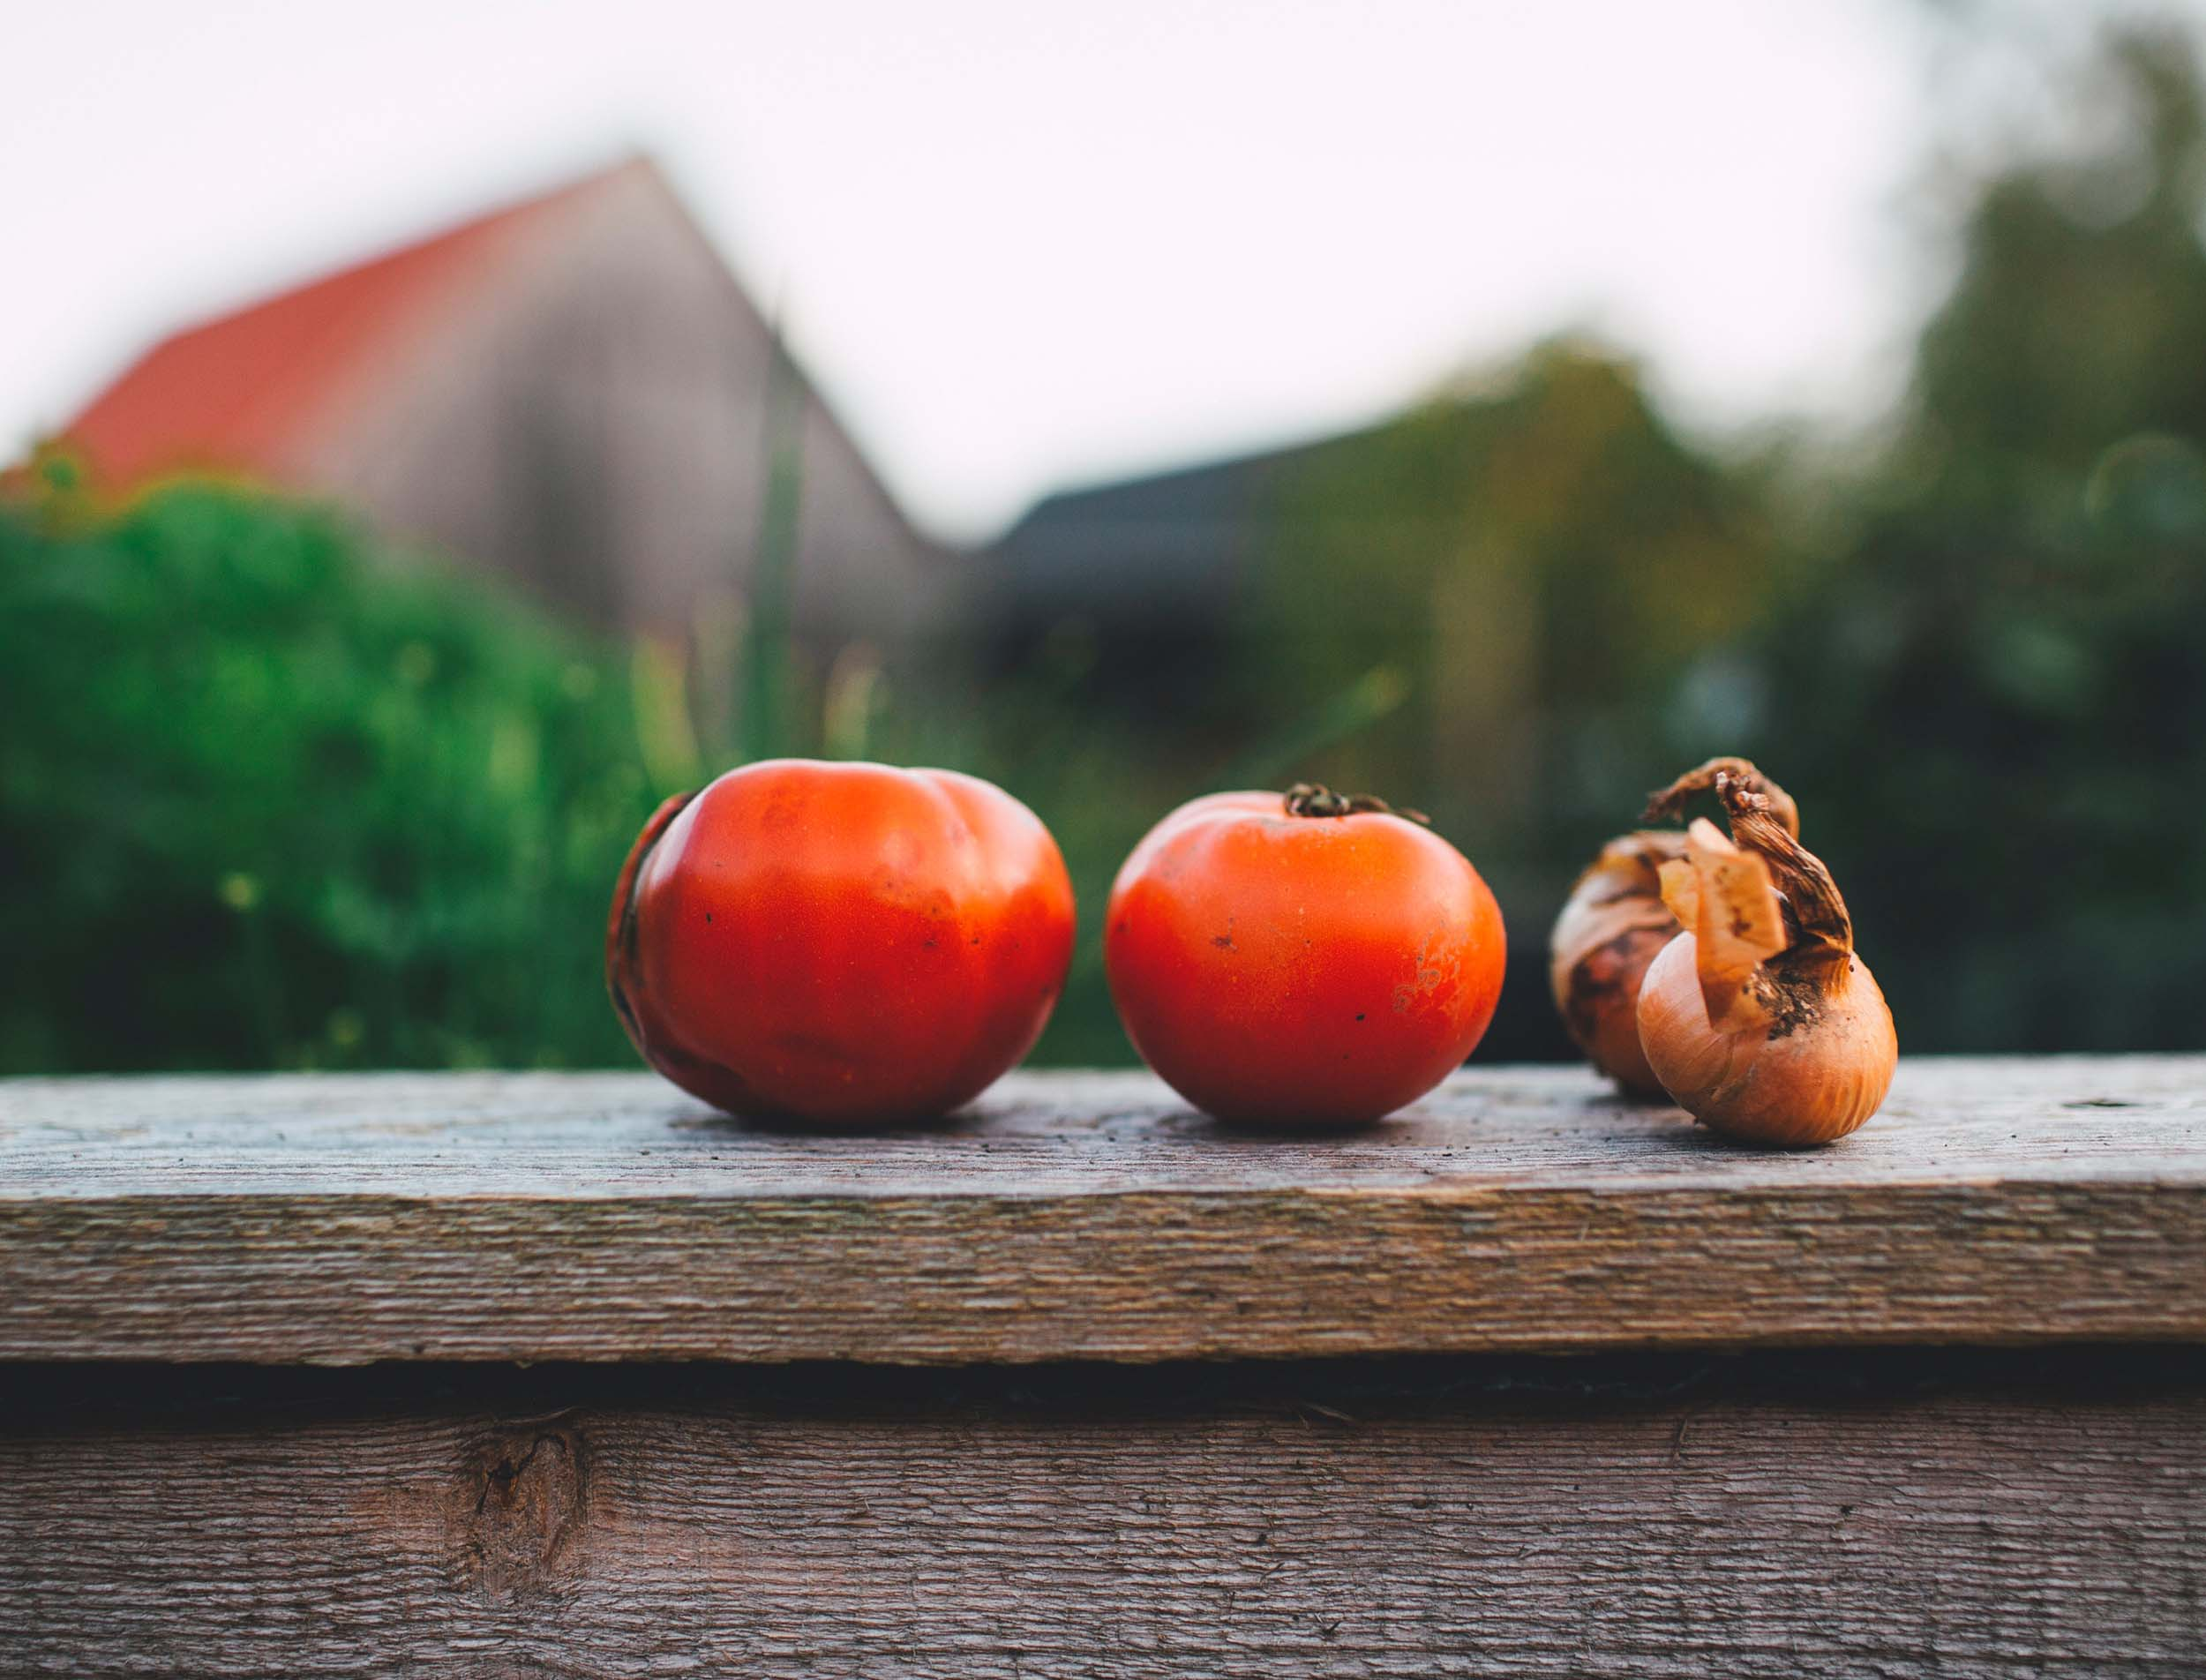 Two tomatoes and two bulbs of garlic sit on a wooden fence in a pastoral scene